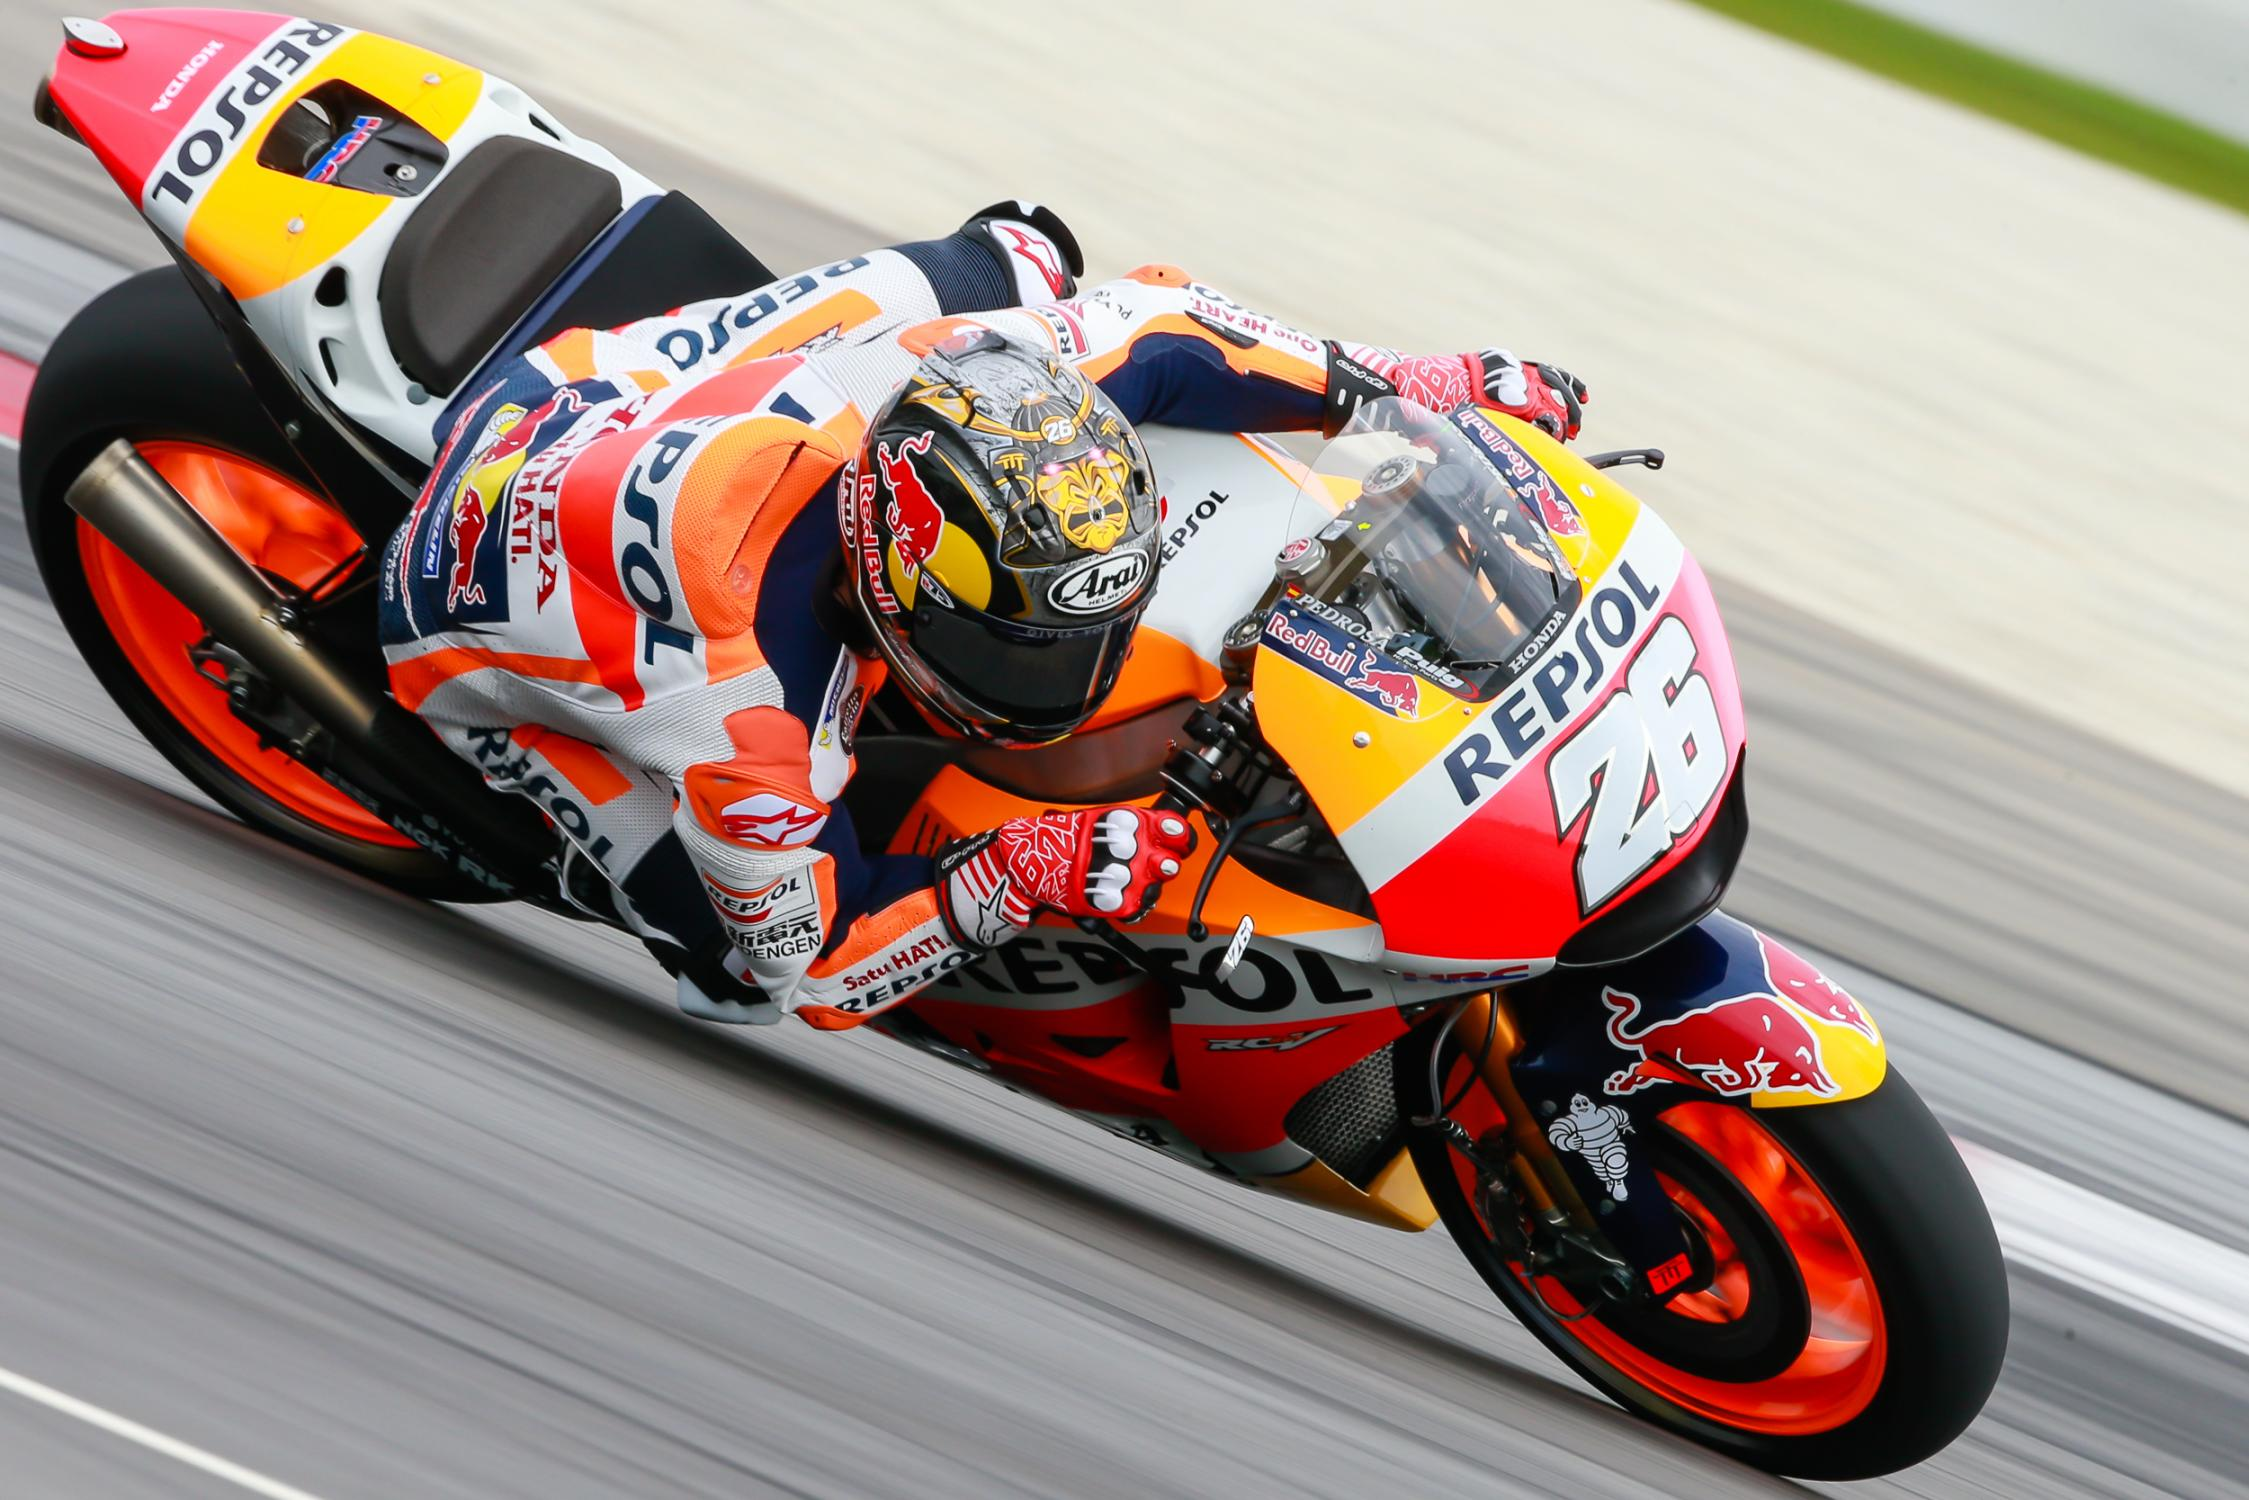 [MotoGP] Test Sepang 26-dani-pedrosa-esp_gp_0361.gallery_full_top_fullscreen